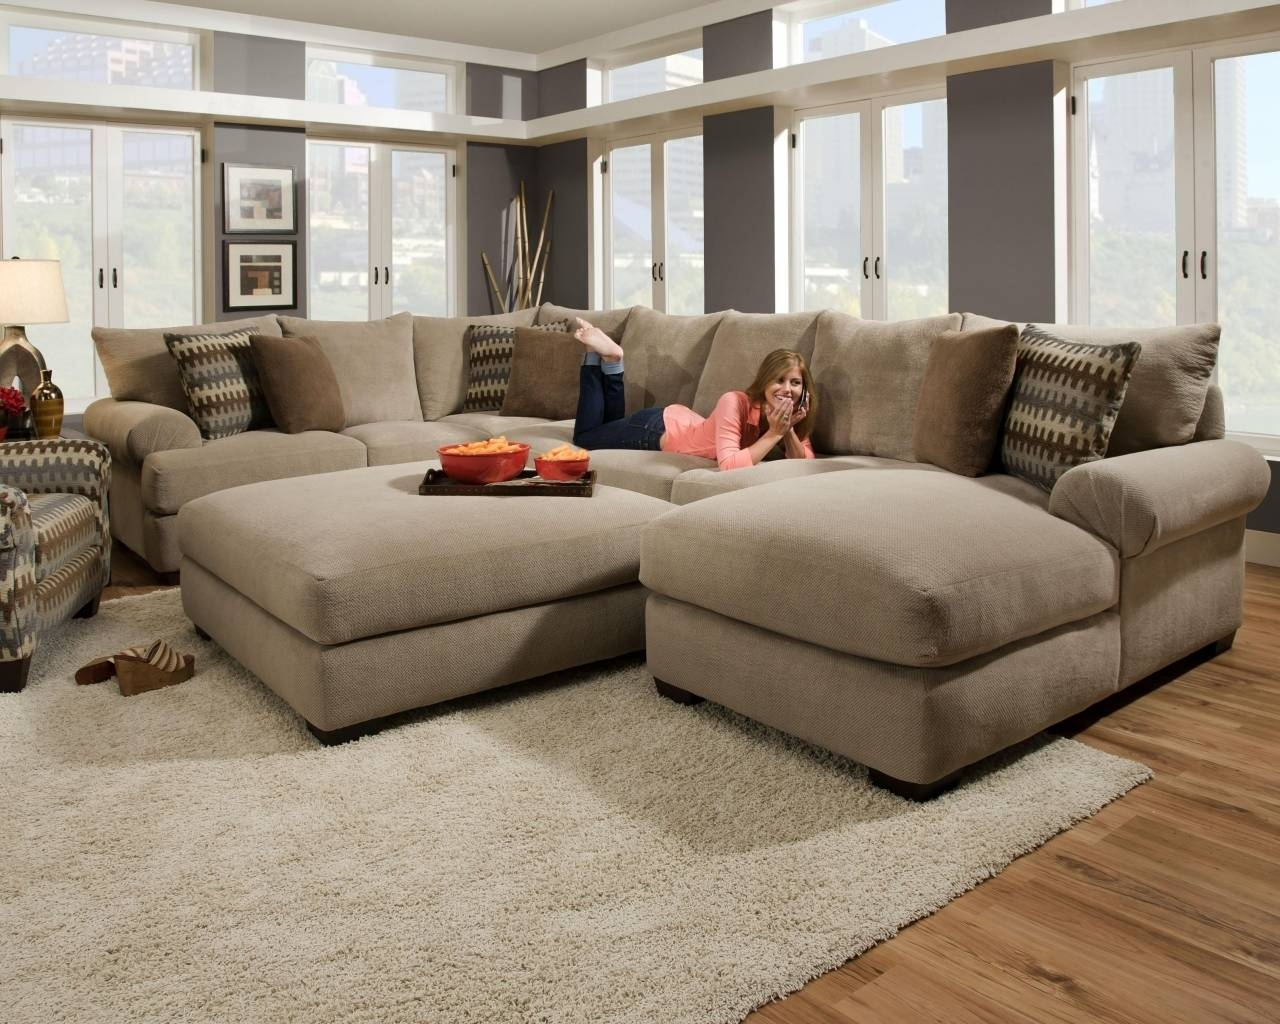 Sofas Center : Bucket Chair Slipcovers Home Designs Excellent with regard to Large Sofa Slipcovers (Image 18 of 30)